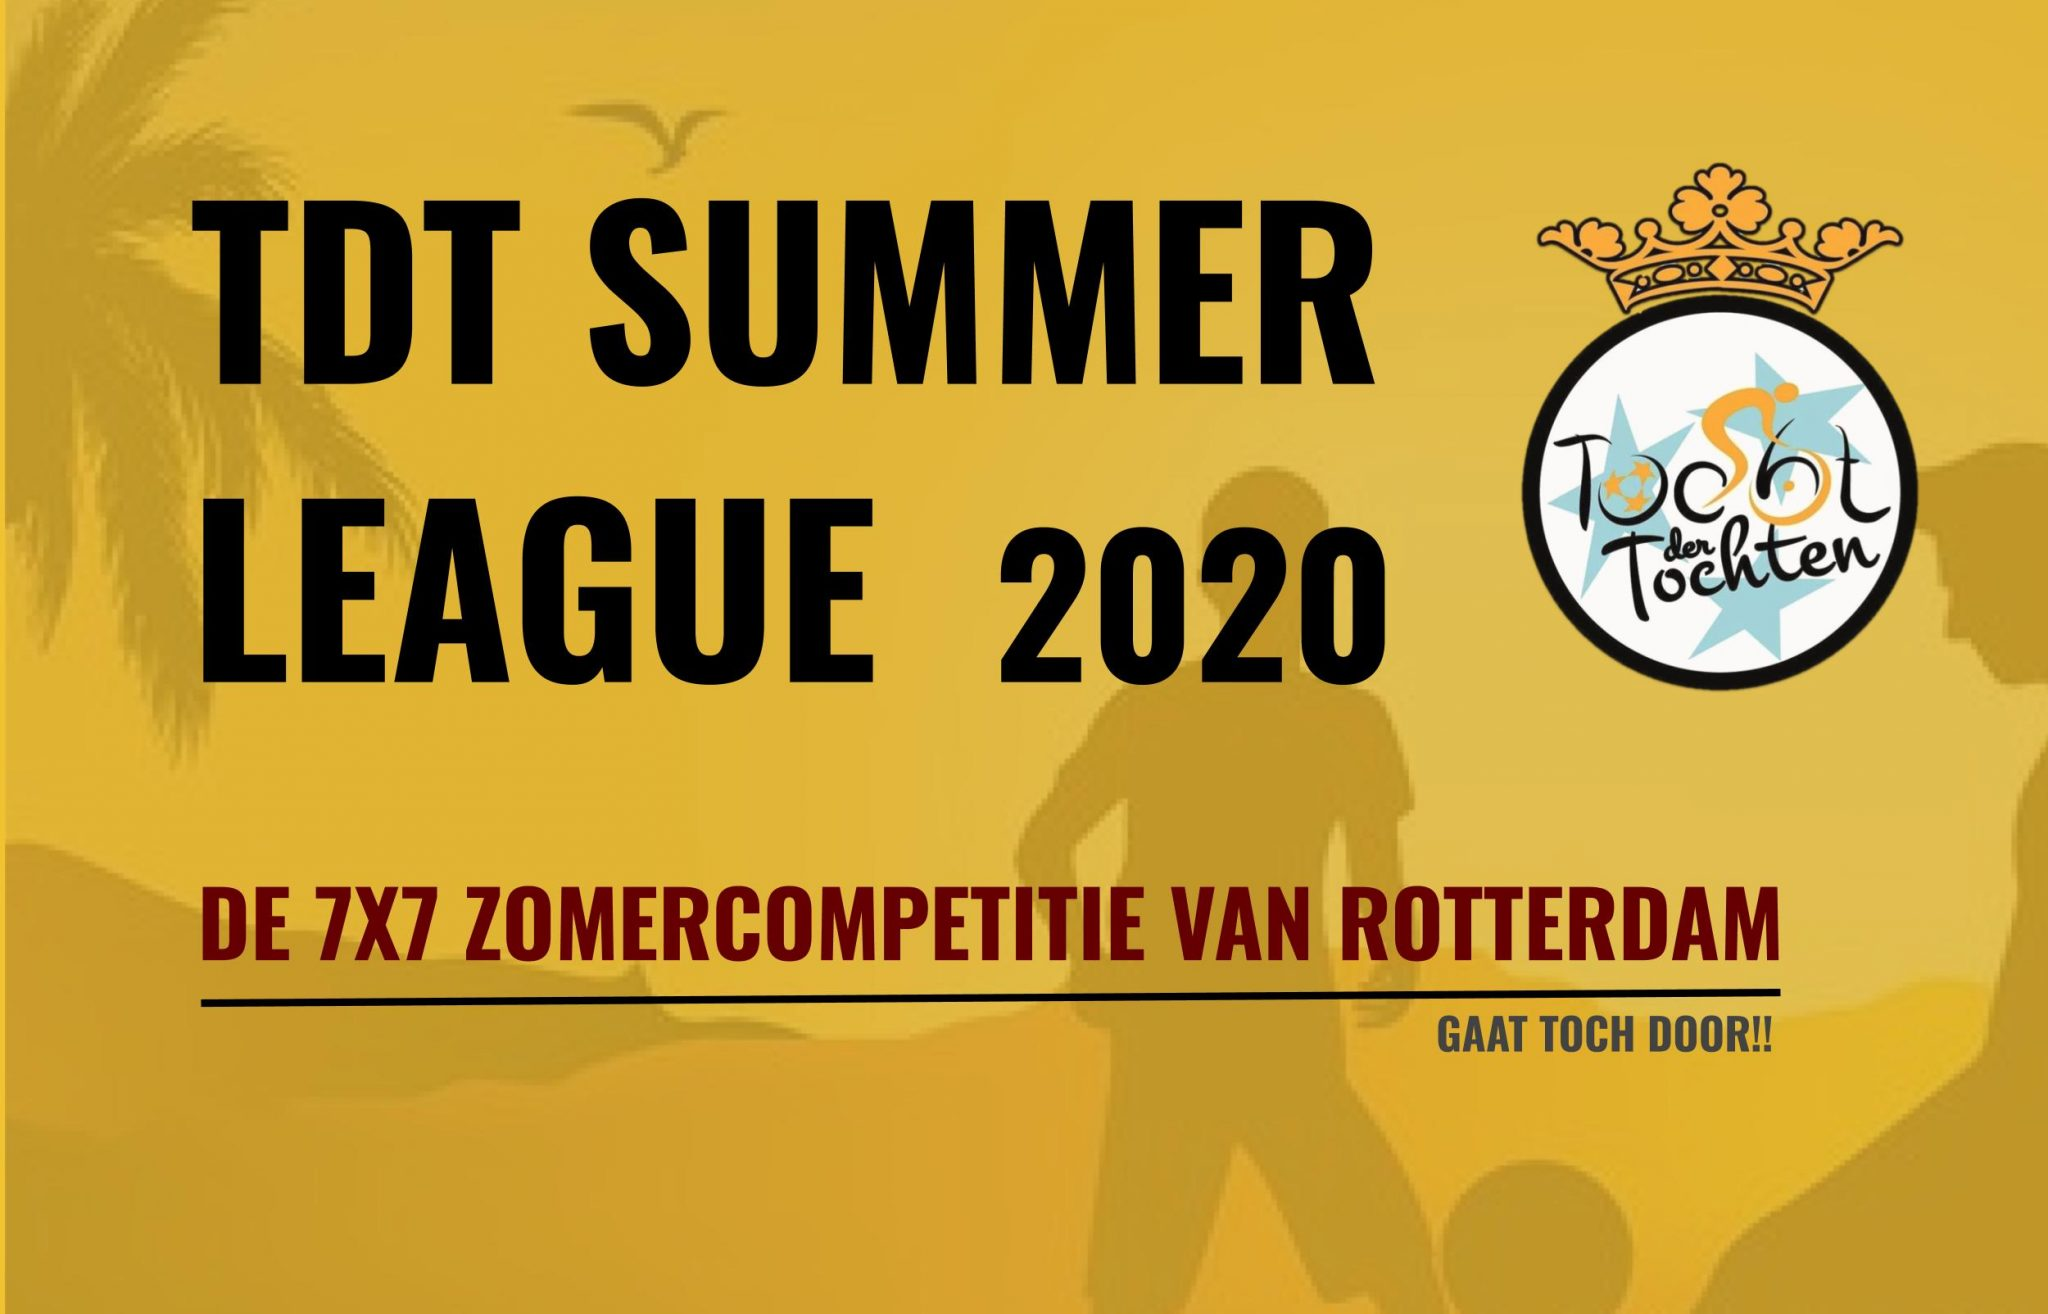 TDT Summer League 2020 start zaterdag 4 juli bij XerxesDZB!